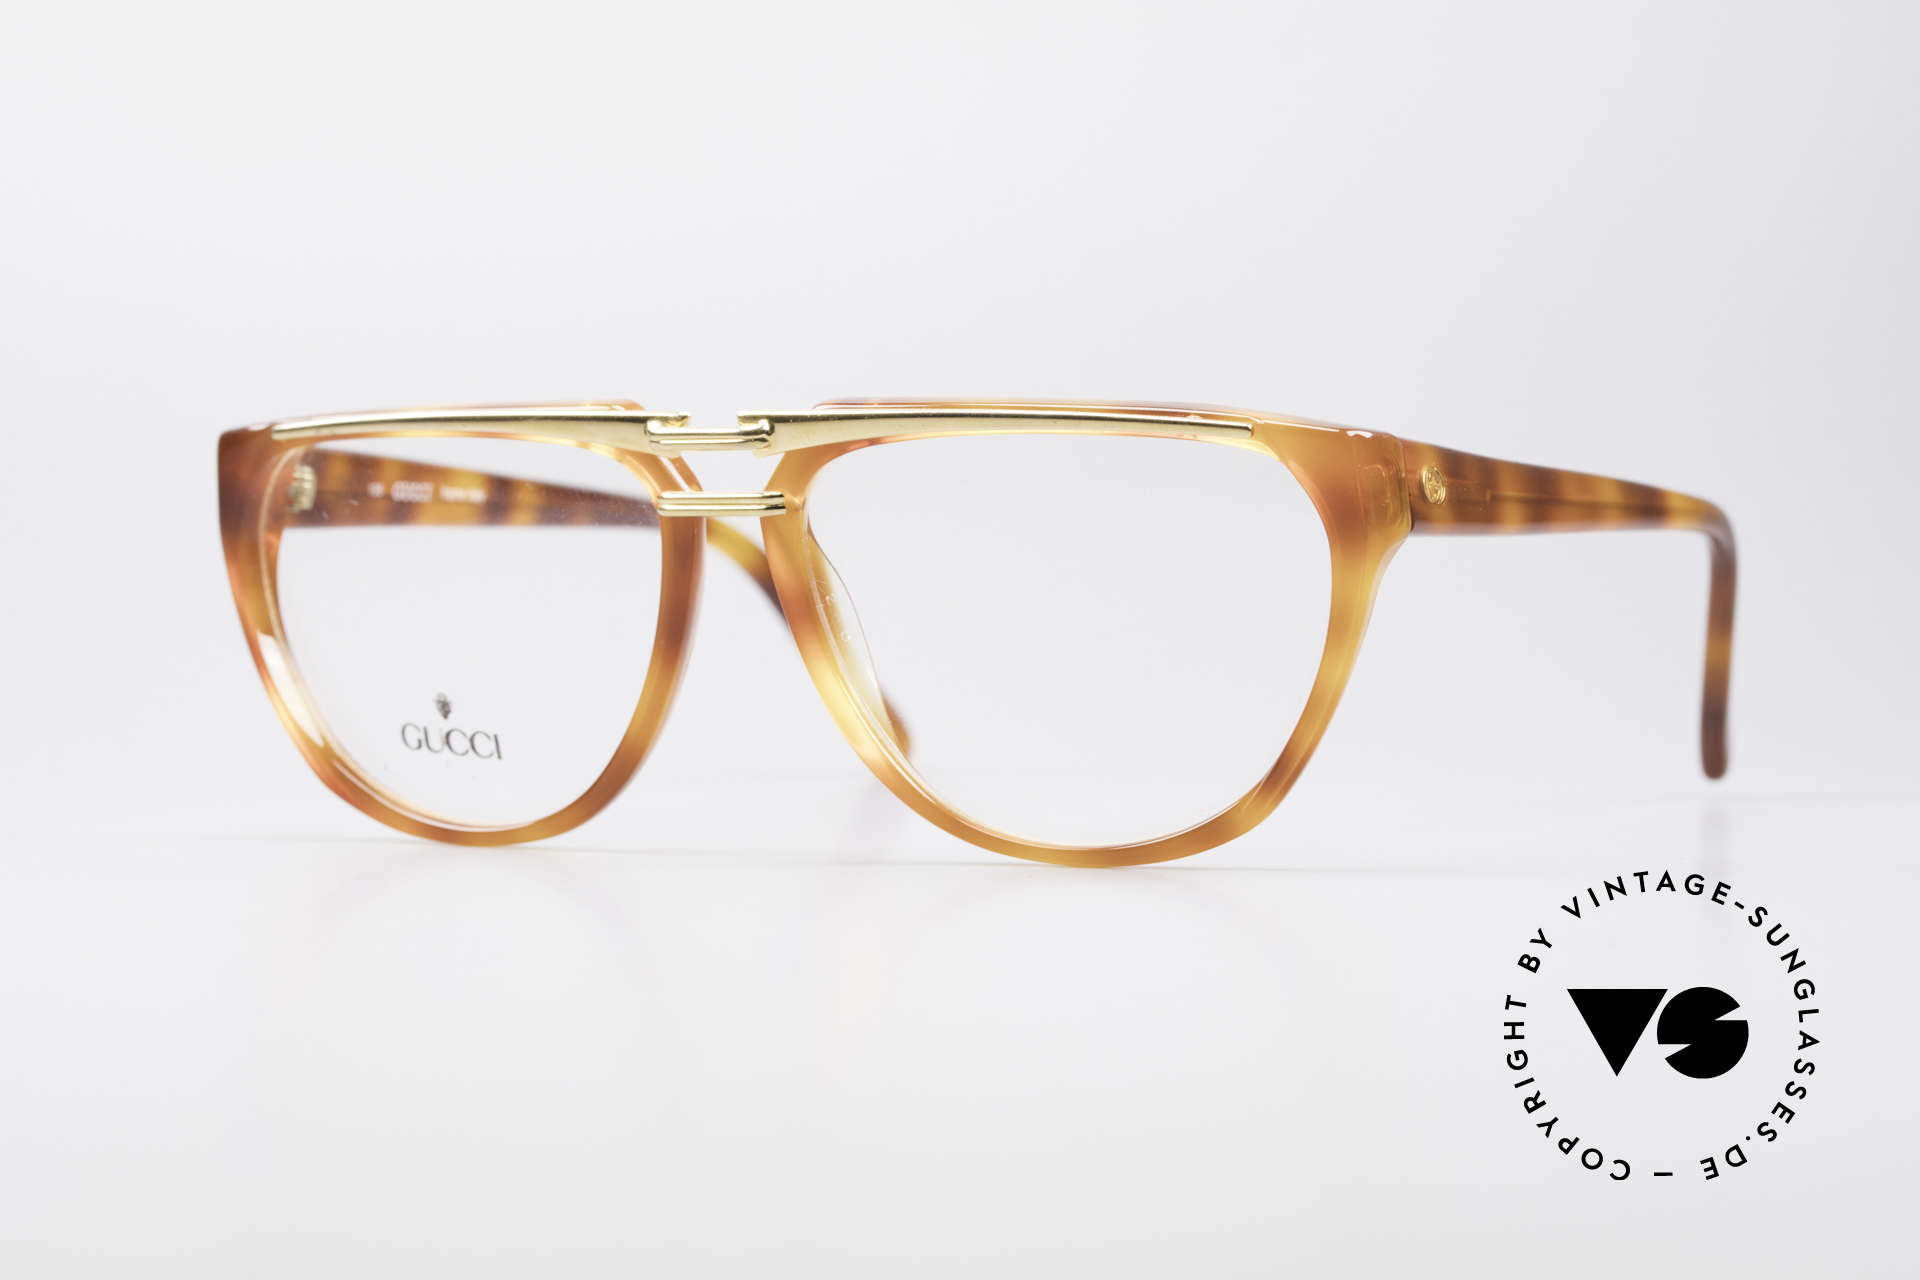 Gucci 2321 Ladies Designer Glasses 80's, vintage 80's eyeglasses by GUCCI with tortoise look, Made for Women